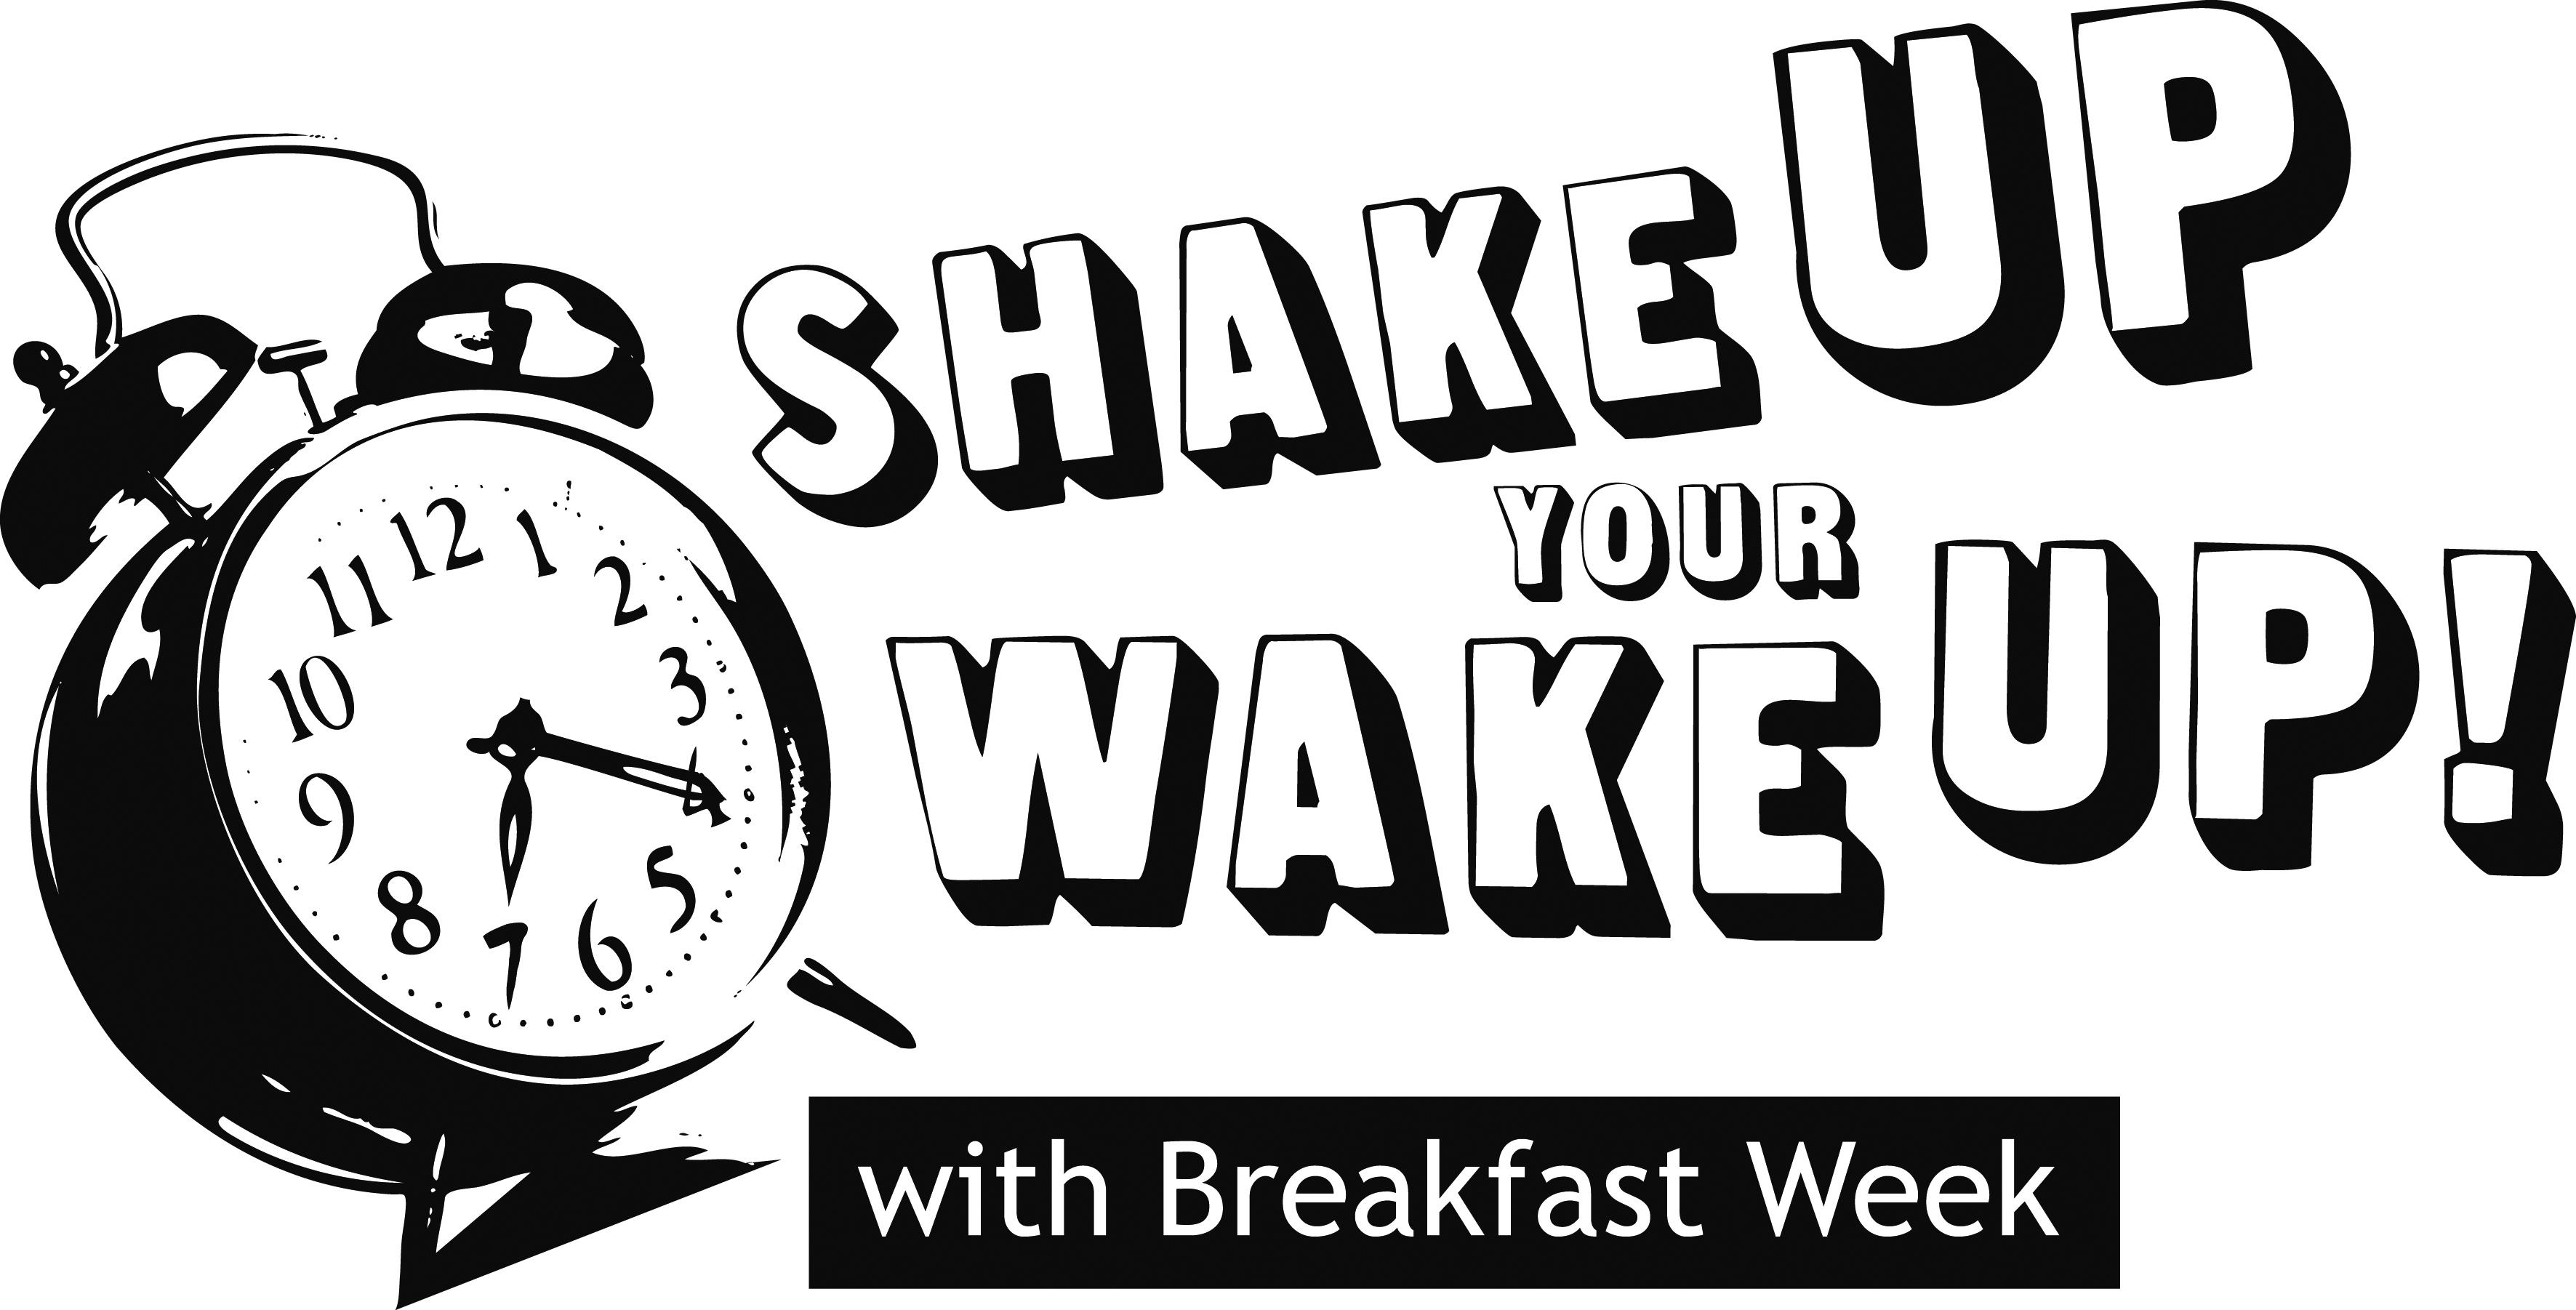 Perfekt for... Shaking up your wake up during Breakfast Week (25-31 January)